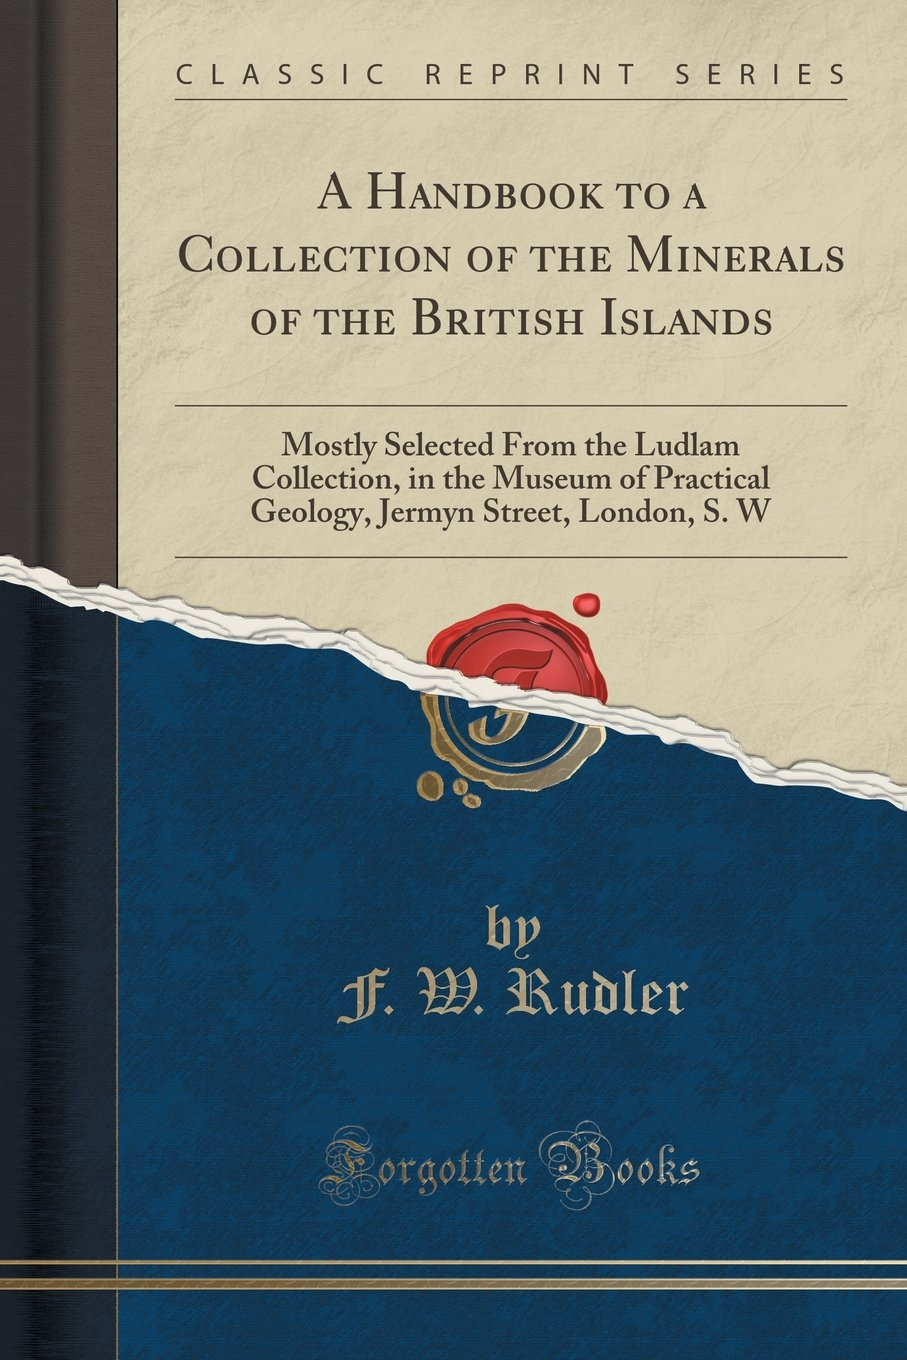 A Handbook to a Collection of the Minerals of the British Islands: Mostly Selected From the Ludlam Collection, in the Museum of Practical Geology, Jermyn Street, London, S. W (Classic Reprint) pdf